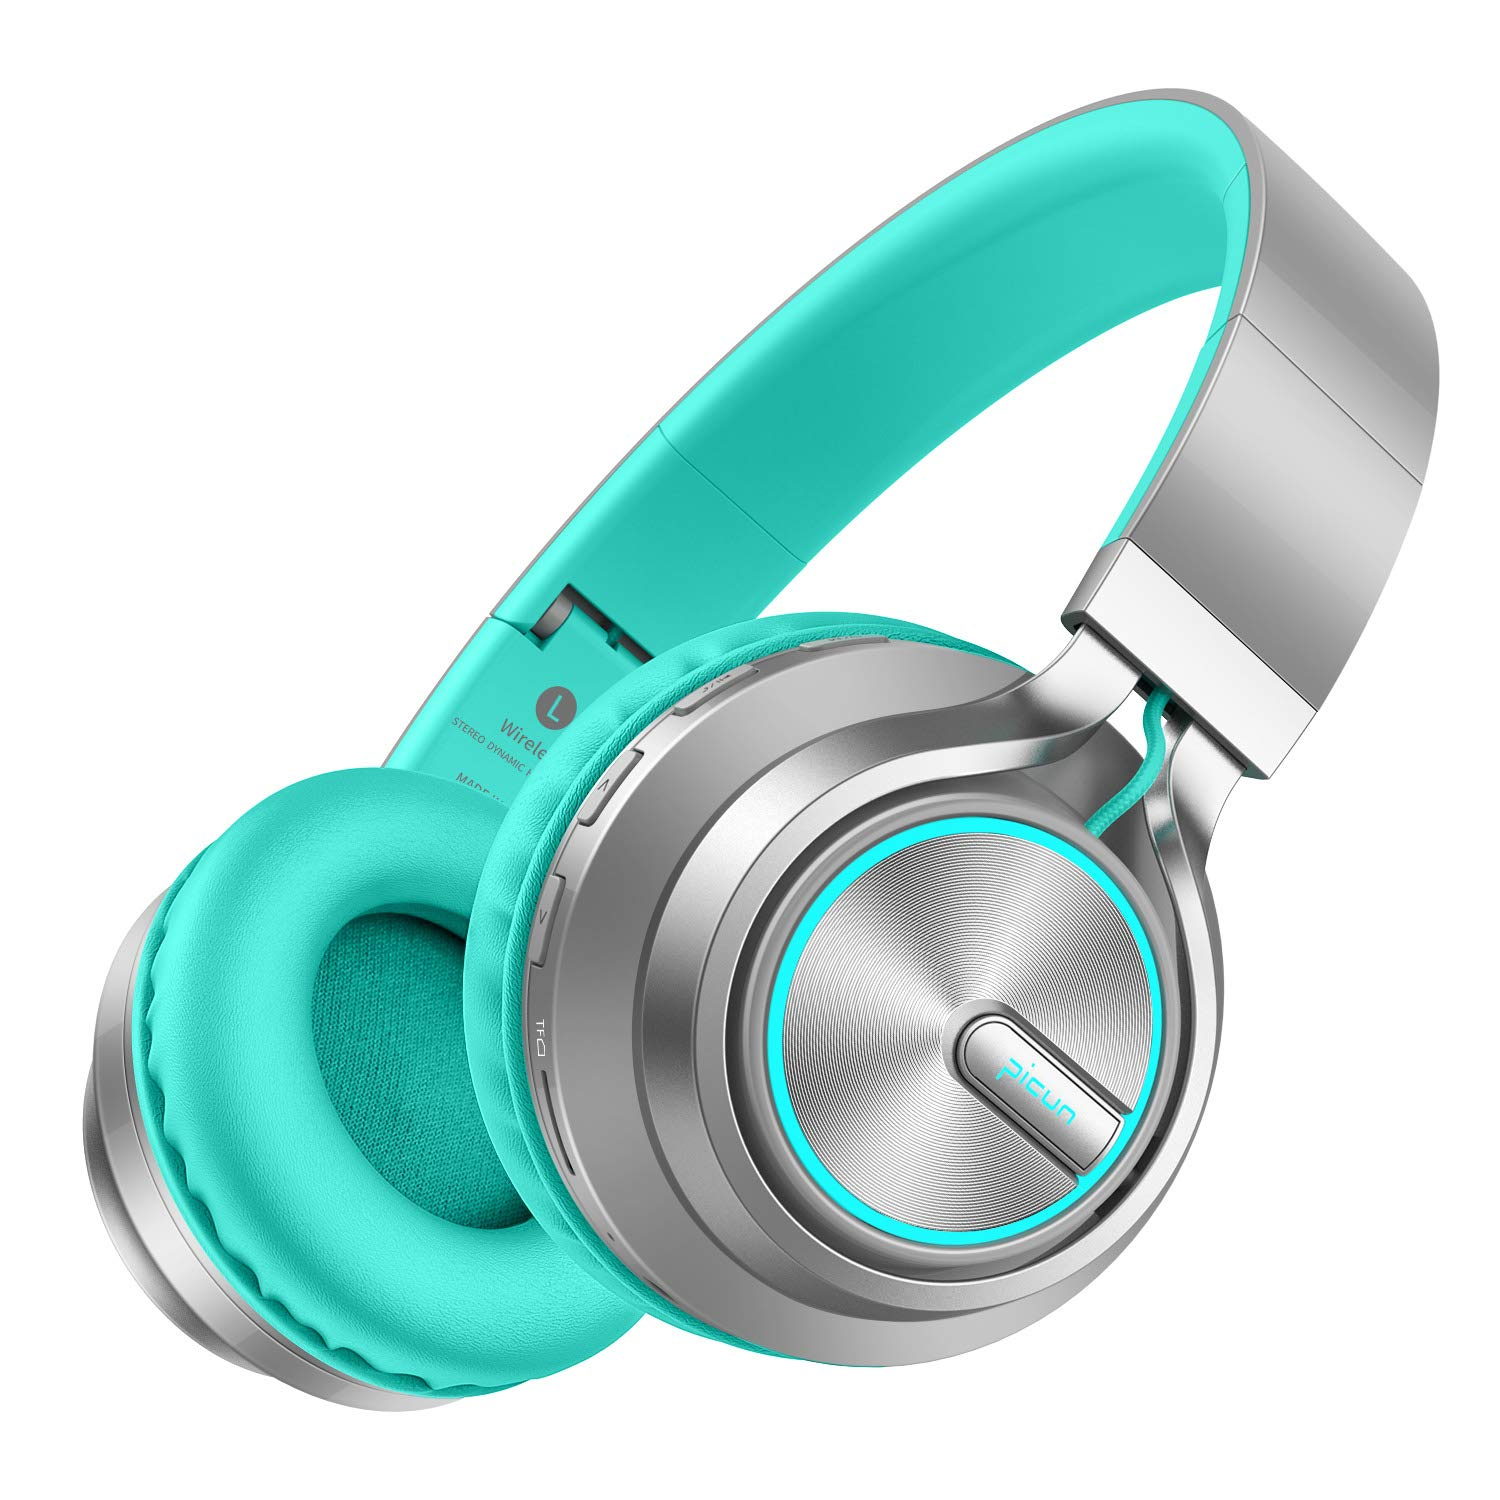 Amazon Com Wireless Headphones 25 Hrs W Romantic Led Light Hifi Stereo Picun Bluetooth 5 0 Headphones Over Ear W Deep Bass Hd Mic Bag Protein Earpads Foldable Tf Card Wired Mode For Pc Cellphone Grey Mint Electronics